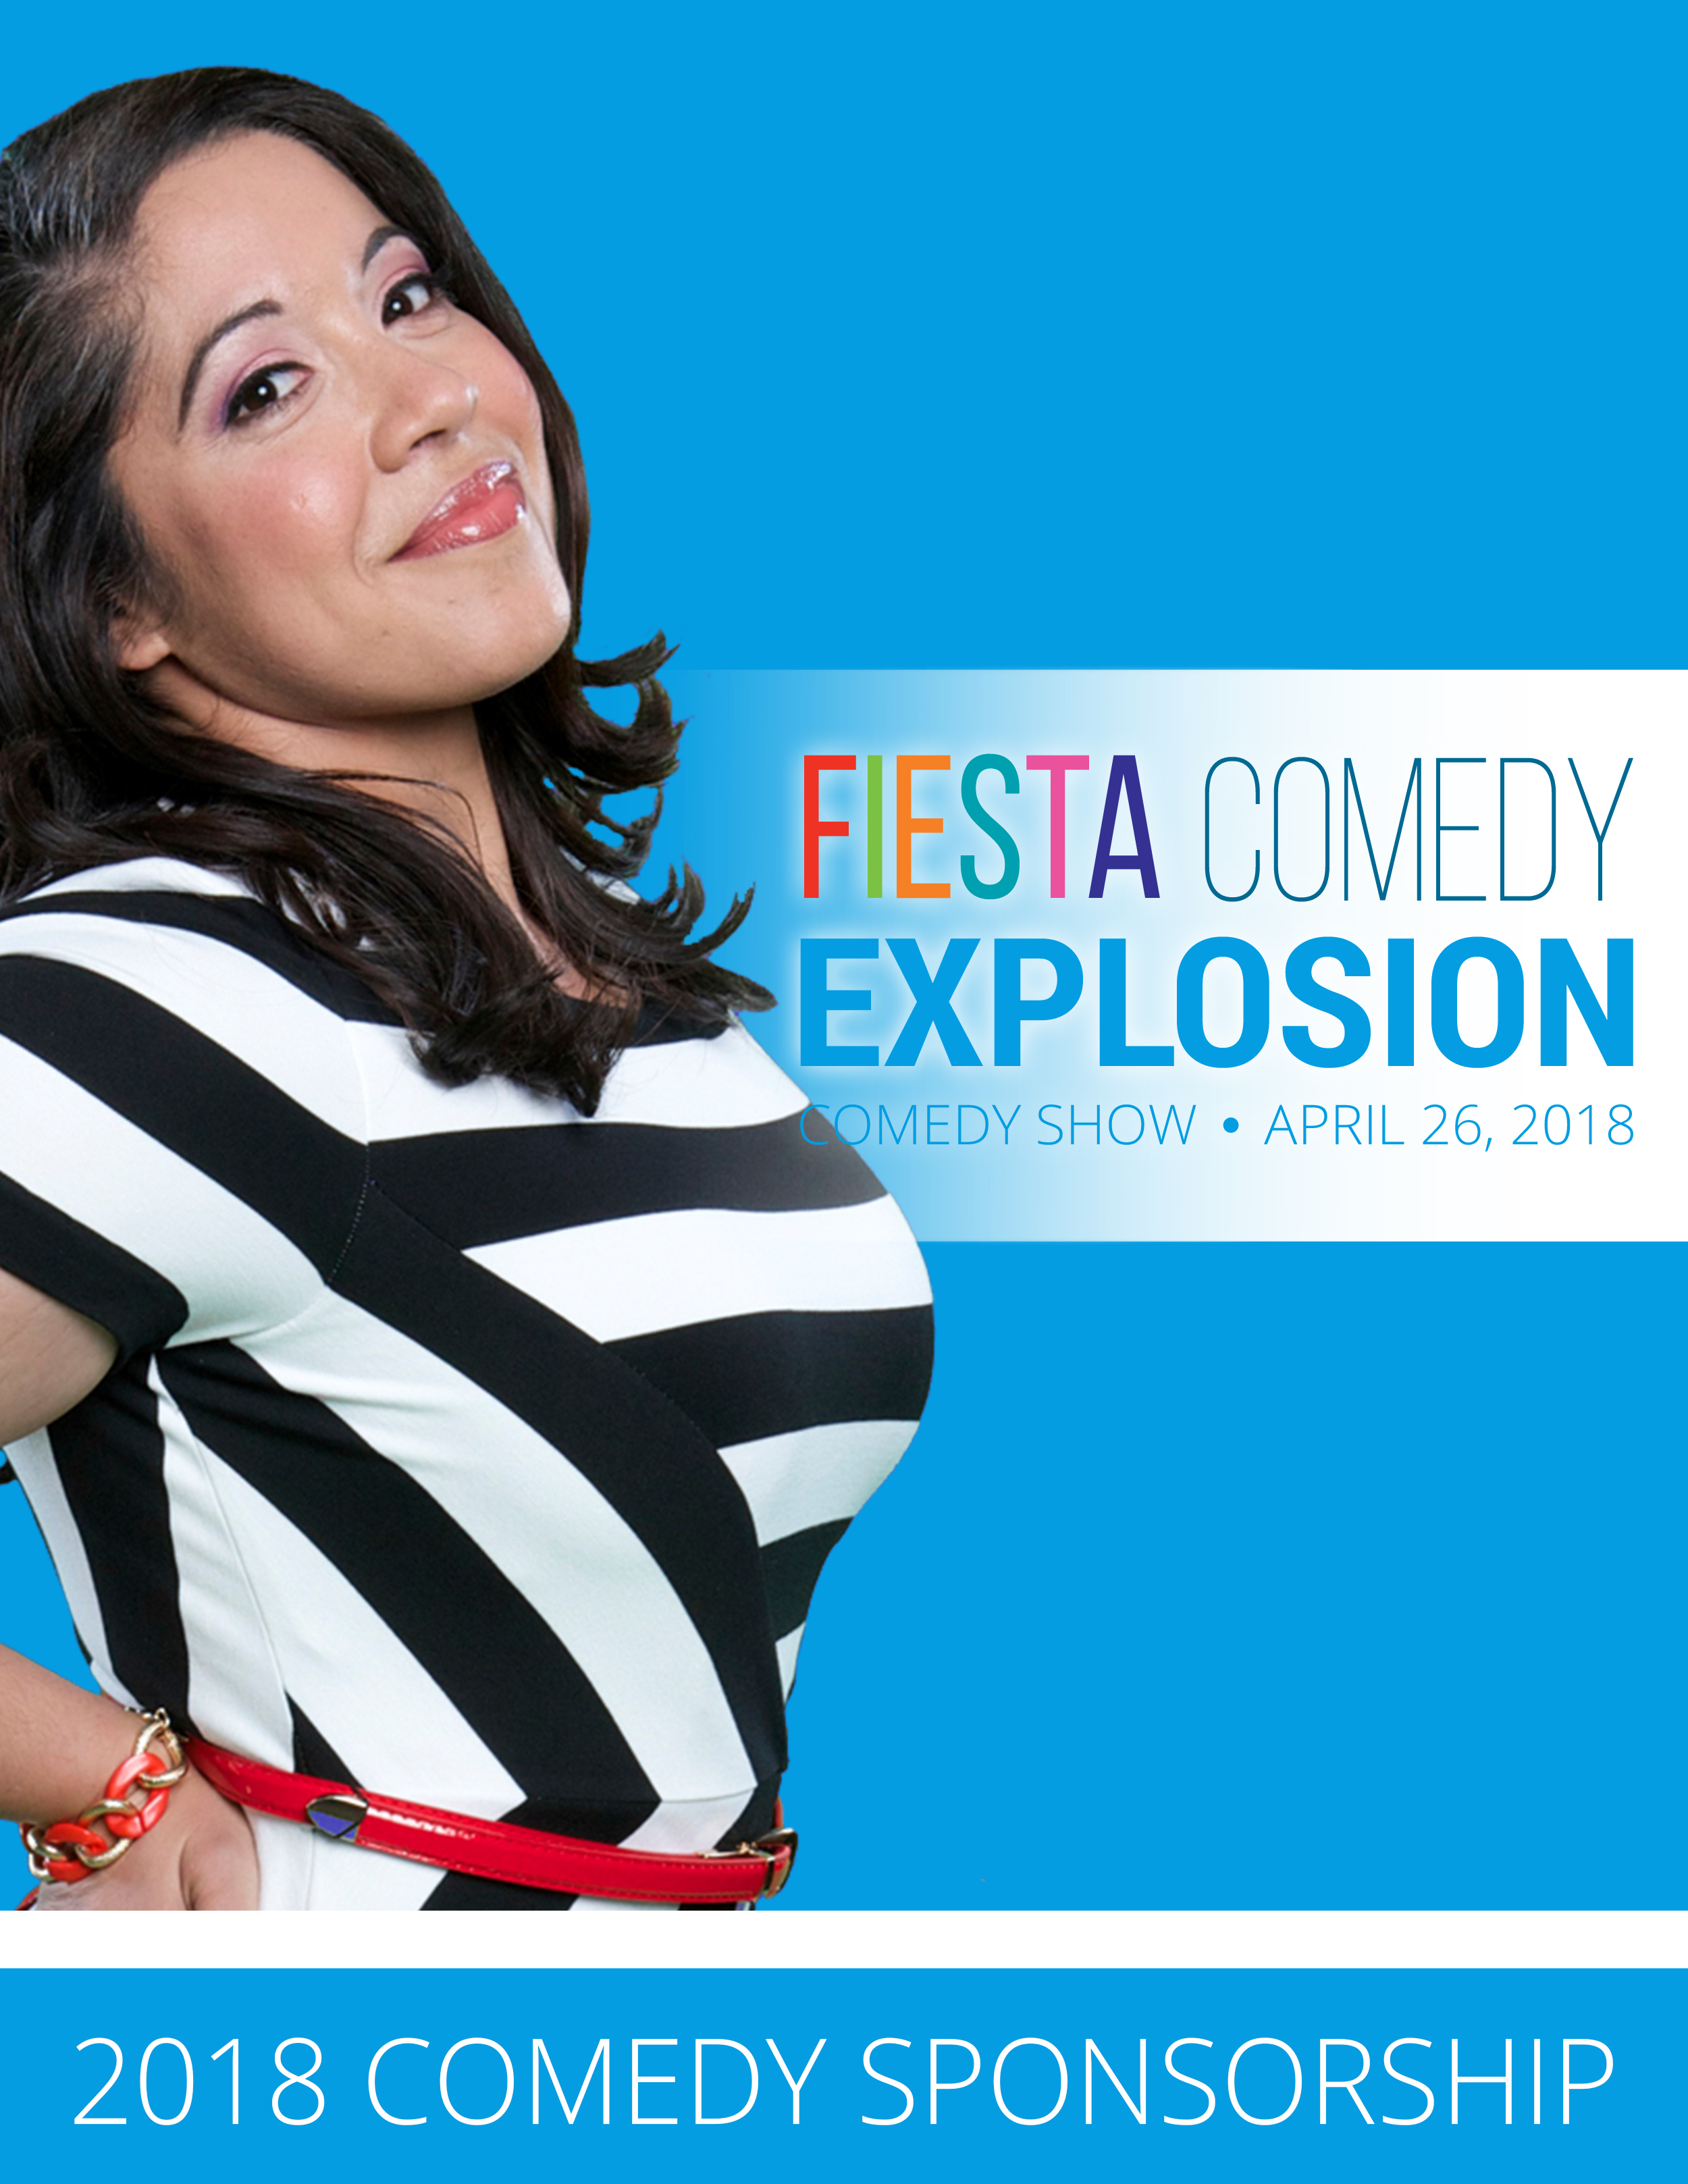 Comedy Sponsorship | Fiesta Comedy Explosion 2018 Sponsorship Package | Fiesta San Antonio | Official Priest Holmes Foundation Website | Priest Holmes Son | Priest Holmes Girlfriend | Priest Holmes Wife | Priest Holmes Engaged | Priest Holmes Family | Priest Holmes is Engaged